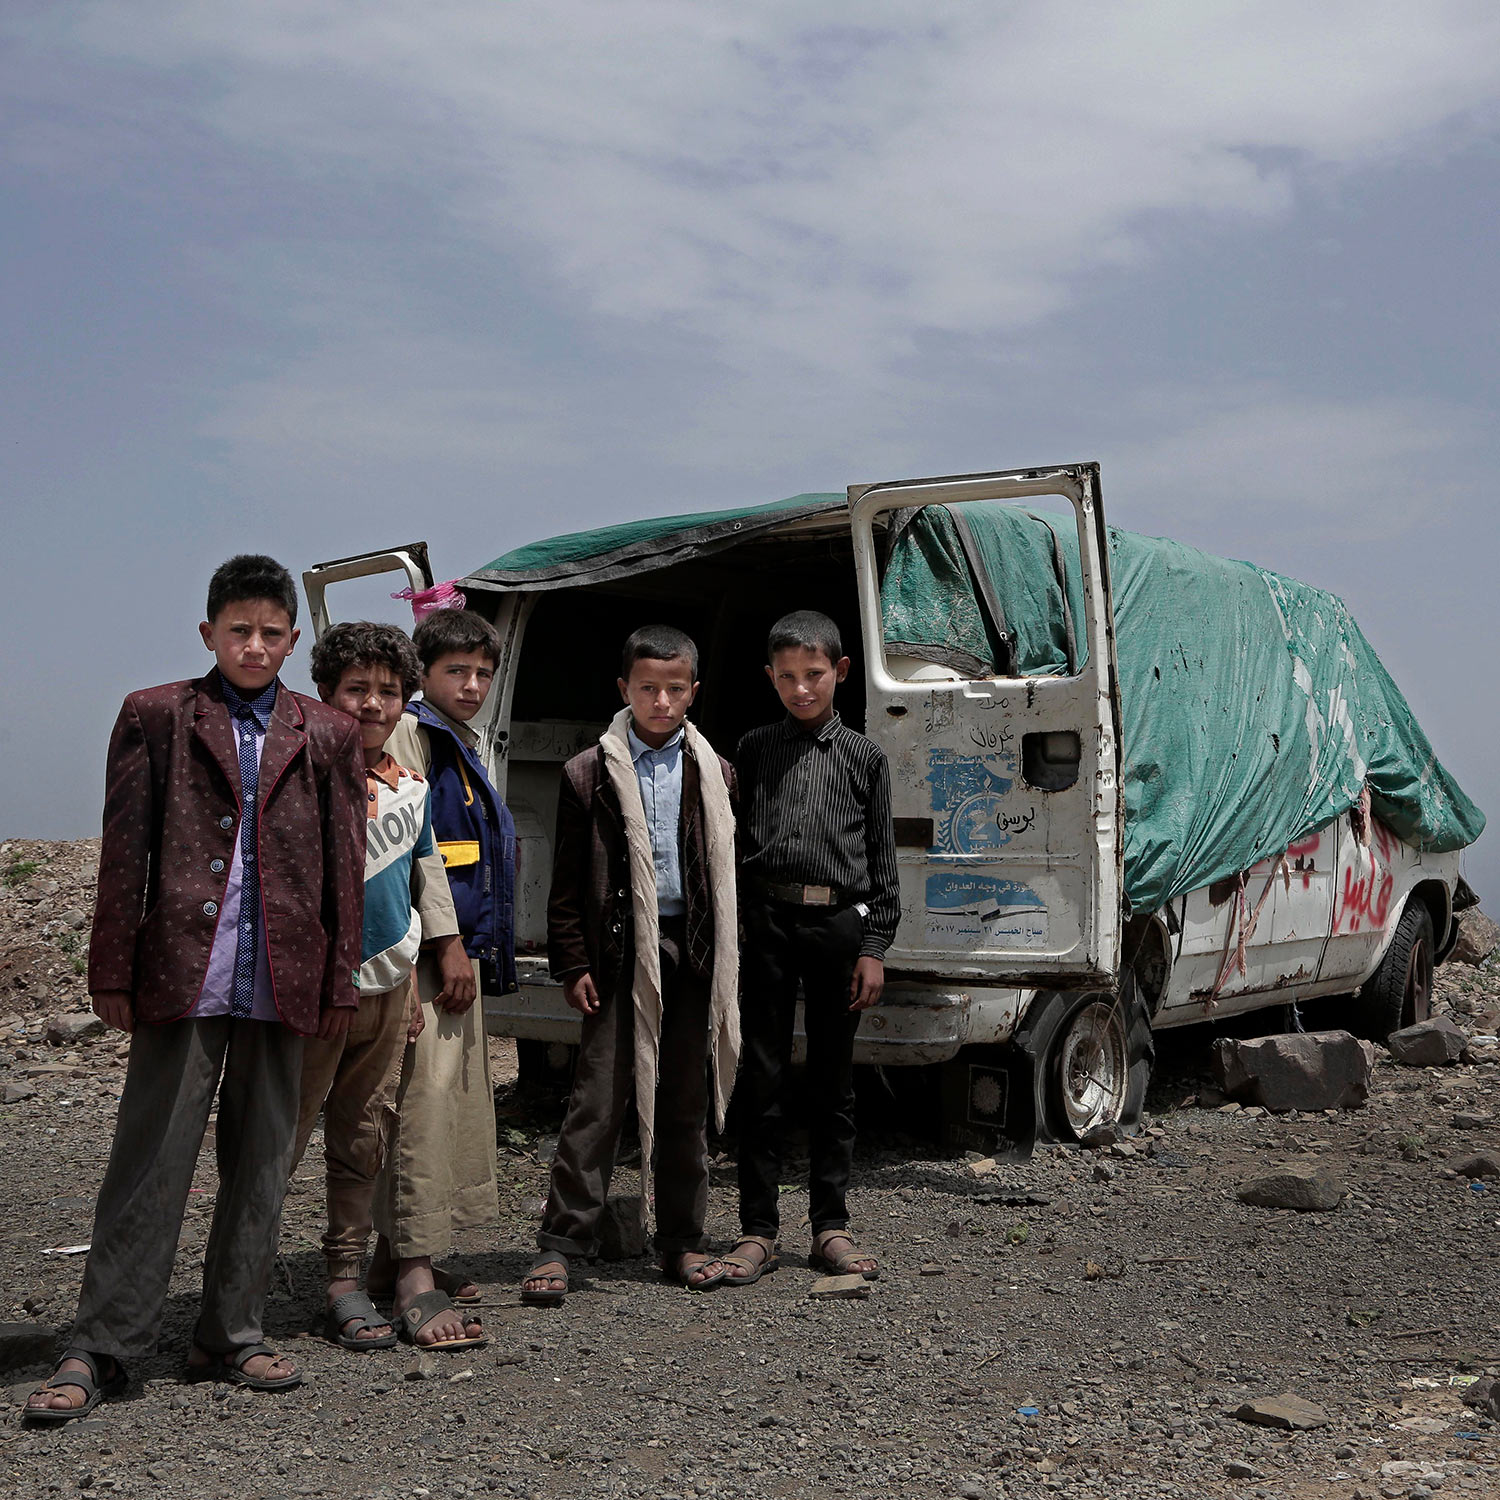 In this Aug. 3, 2018 photo, shows the dilapidated husk of a van behind them with four flat tires half sunk in the dirt on a mountain in Ibb, Yemen. (AP Photo/Nariman El-Mofty)